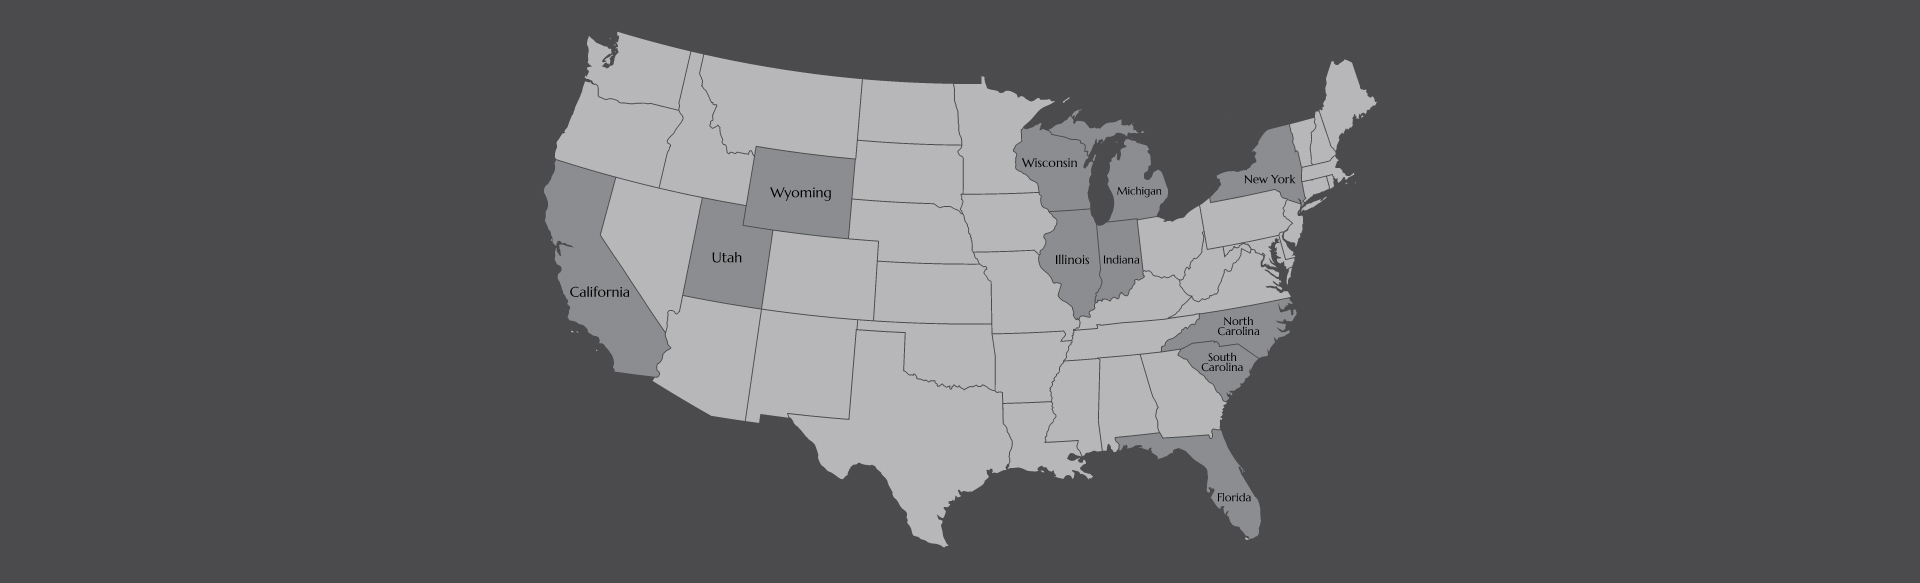 Servicing Locations Across the United States